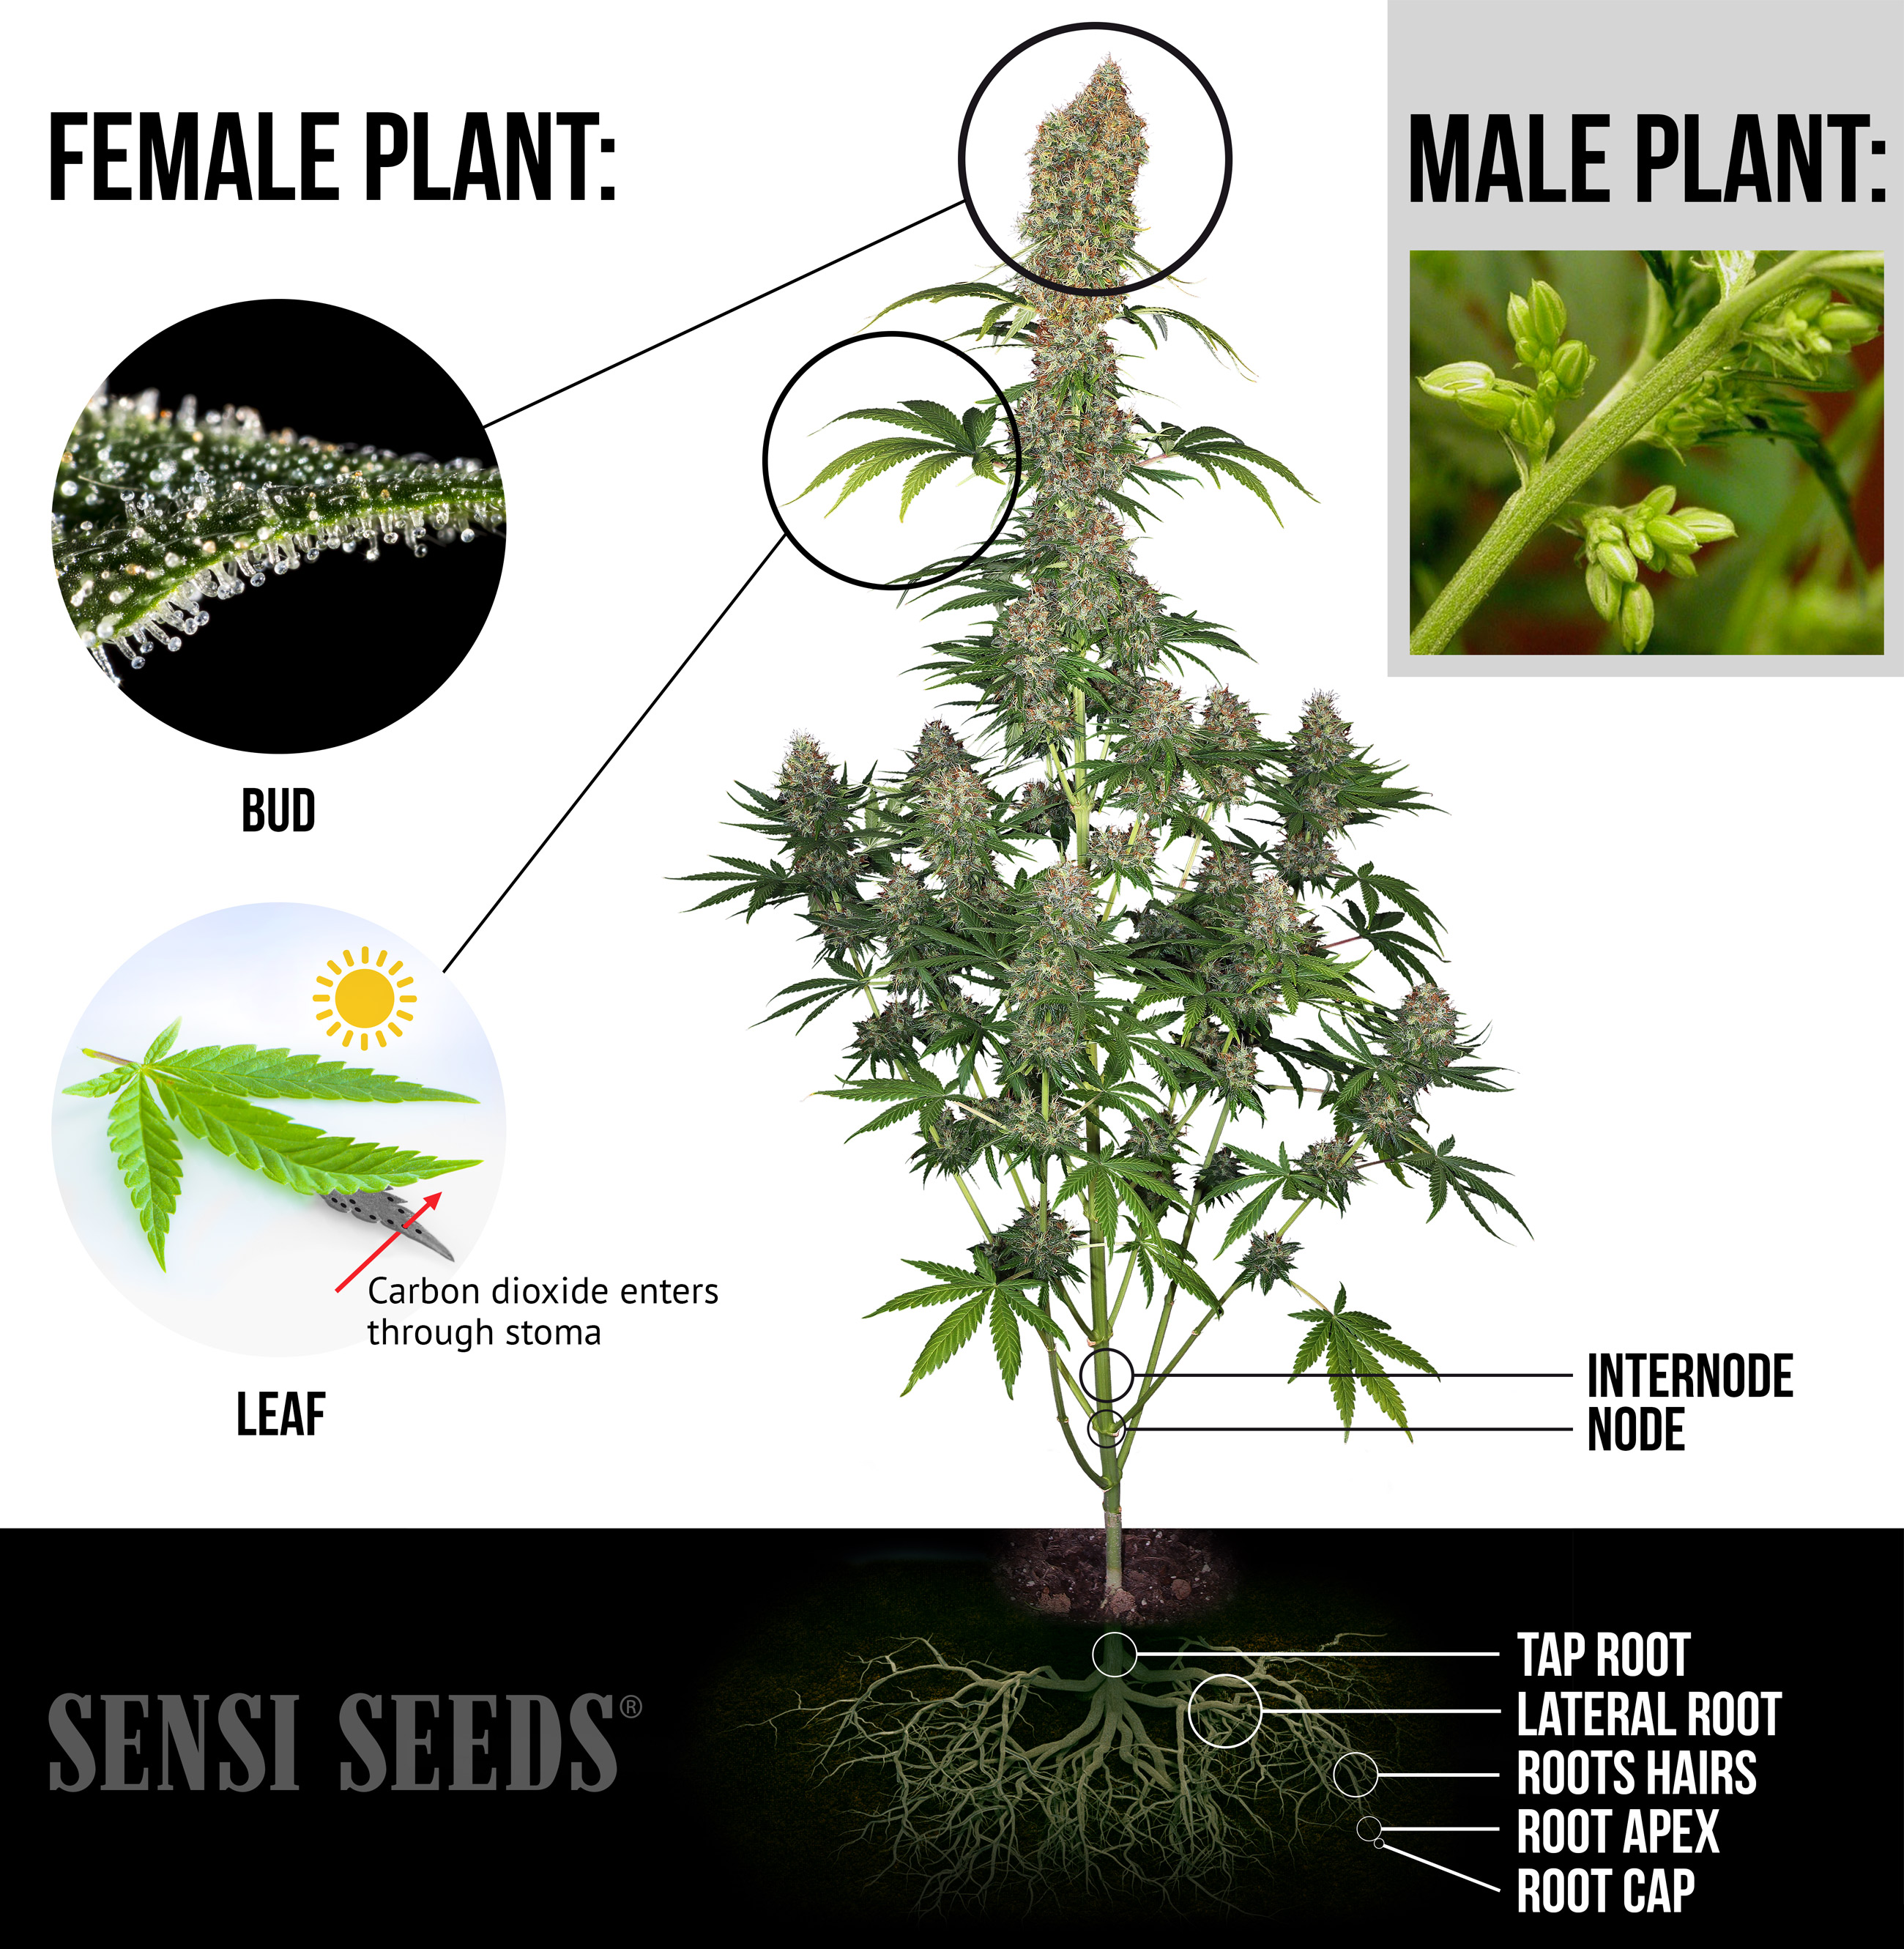 The Parts of the Cannabis Plant